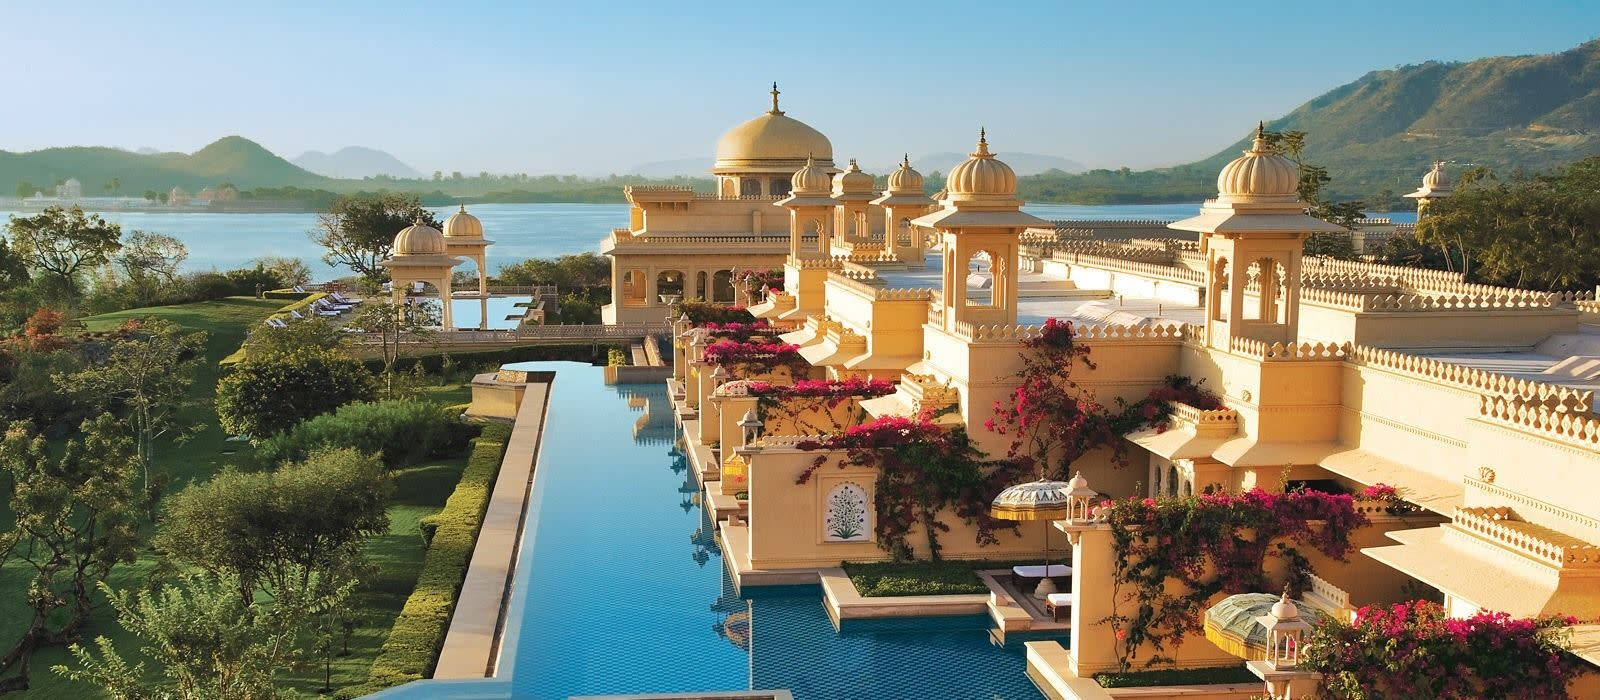 Hotel-Oberoi-Udaivilas-North-India - India travel guide